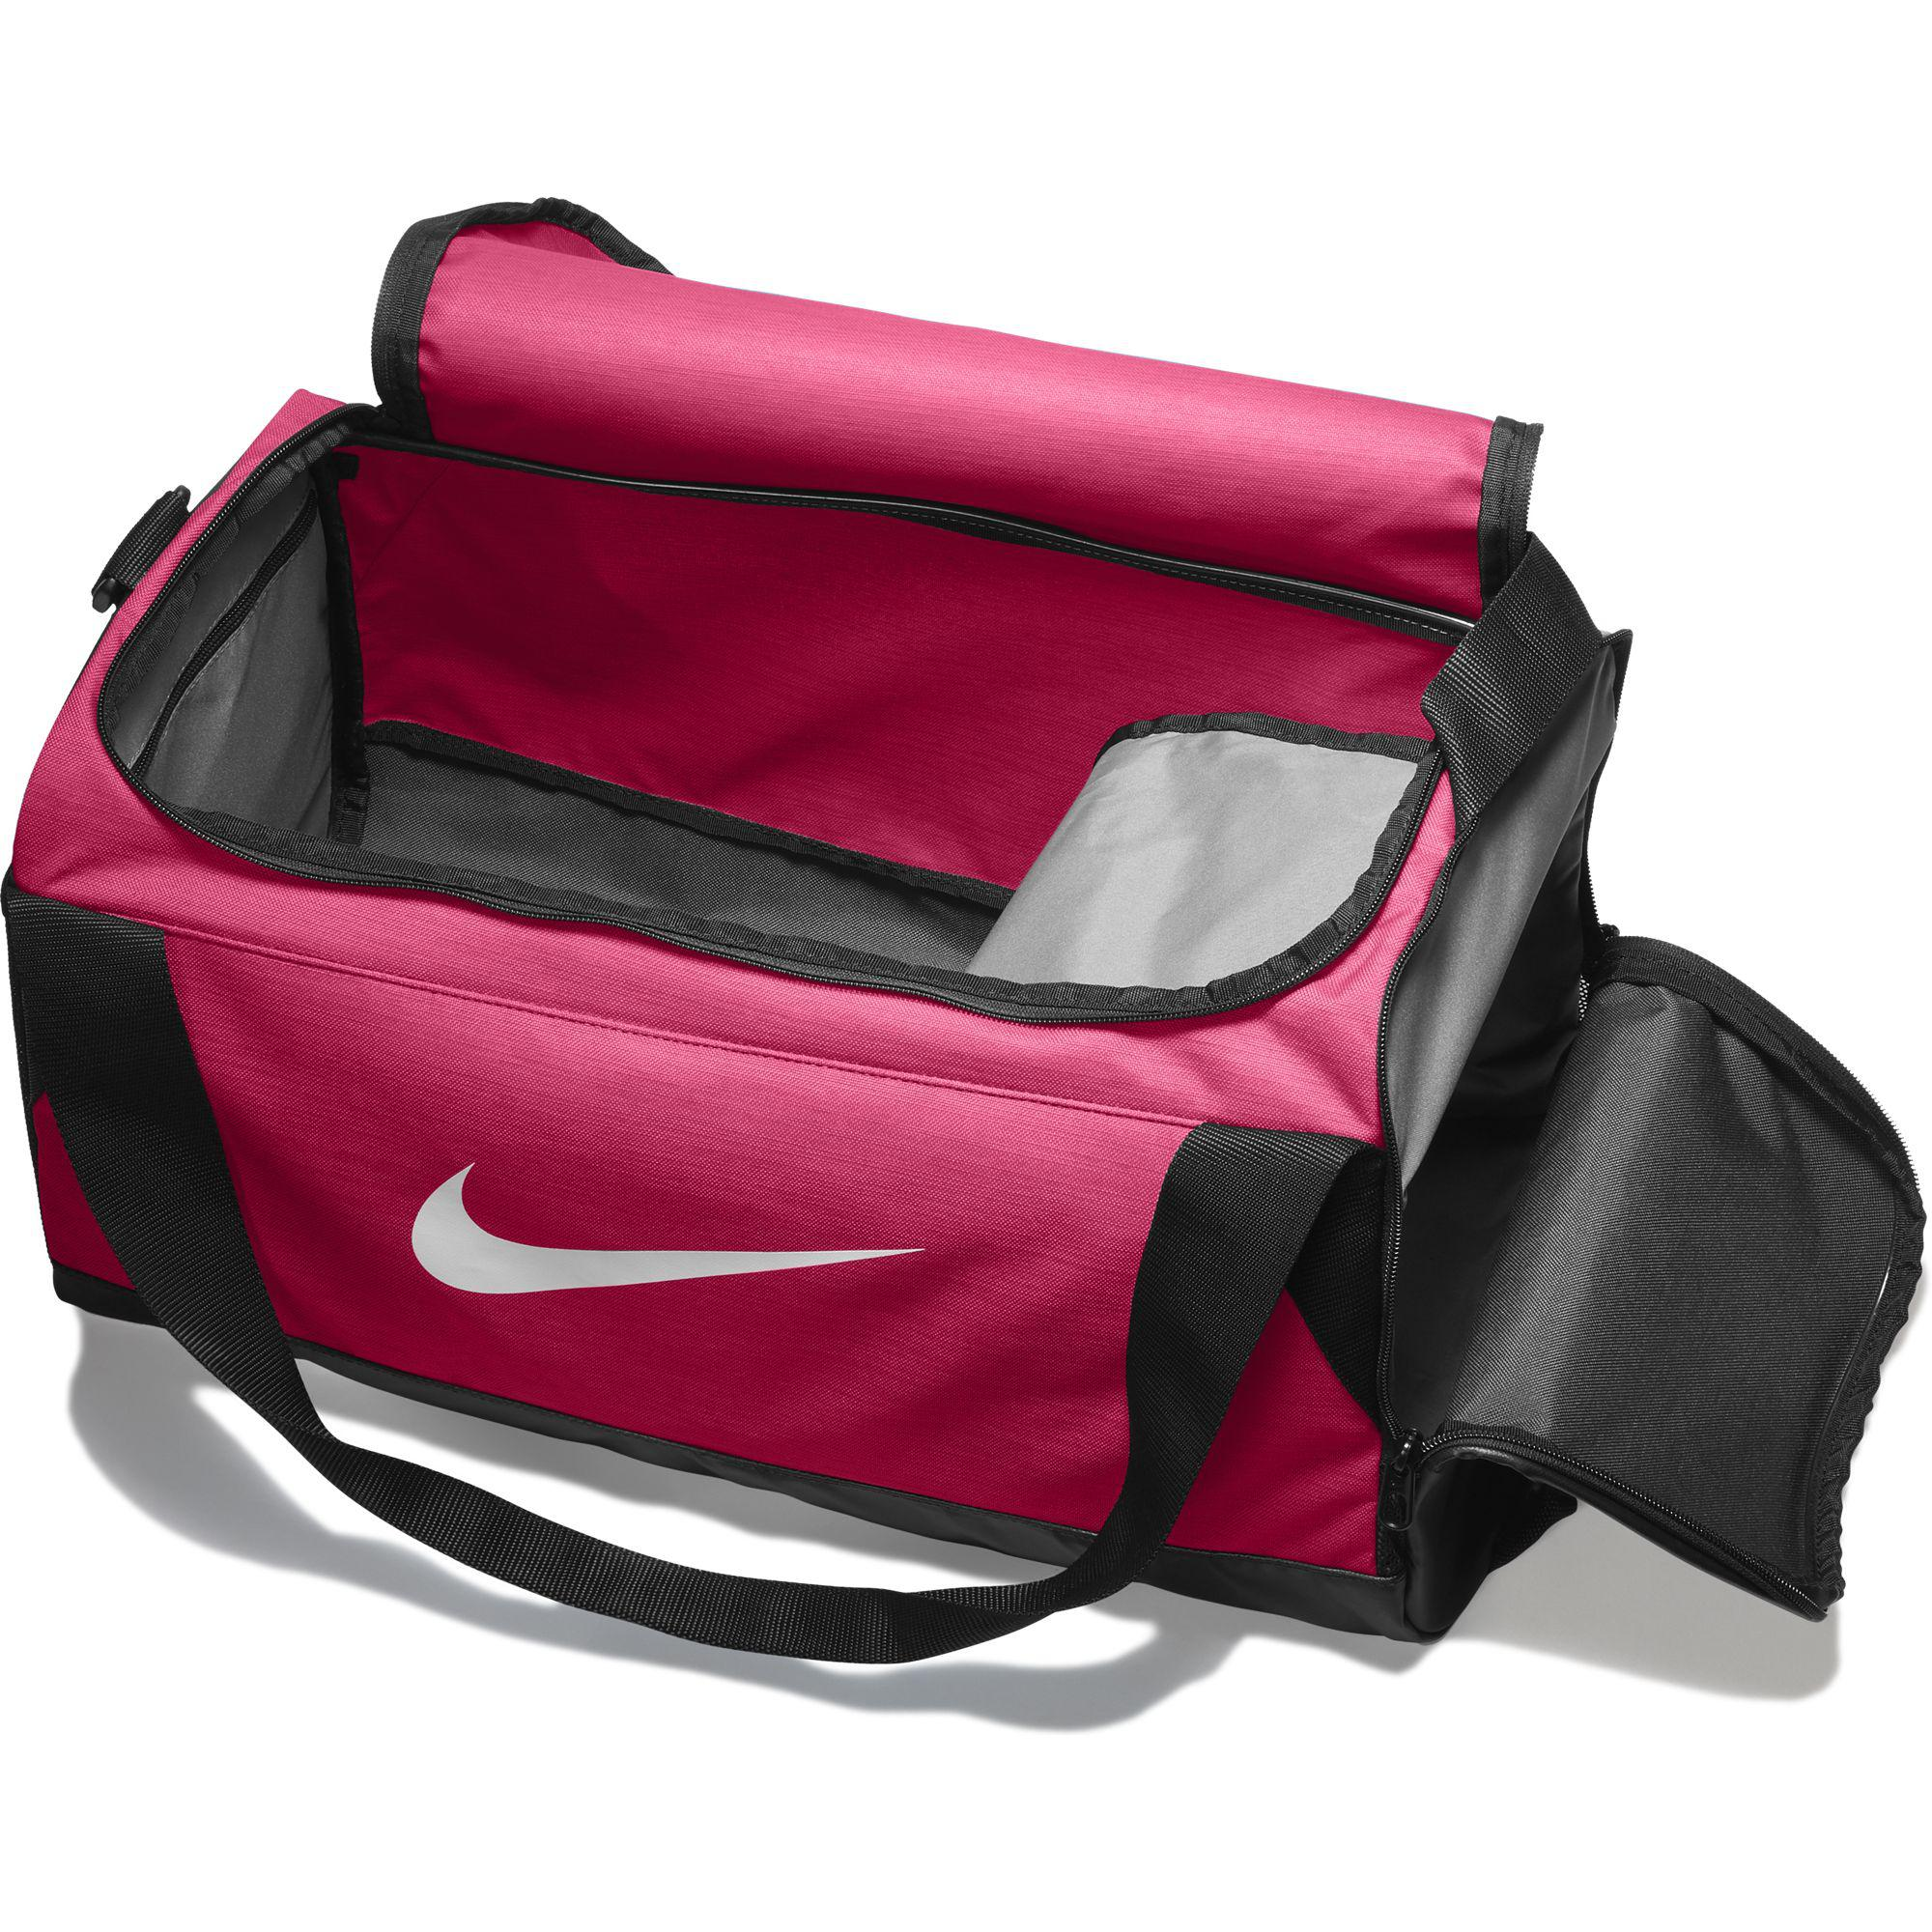 b00477035146 Nike Brasilia Small Training Duffel Bag - Rush Prink